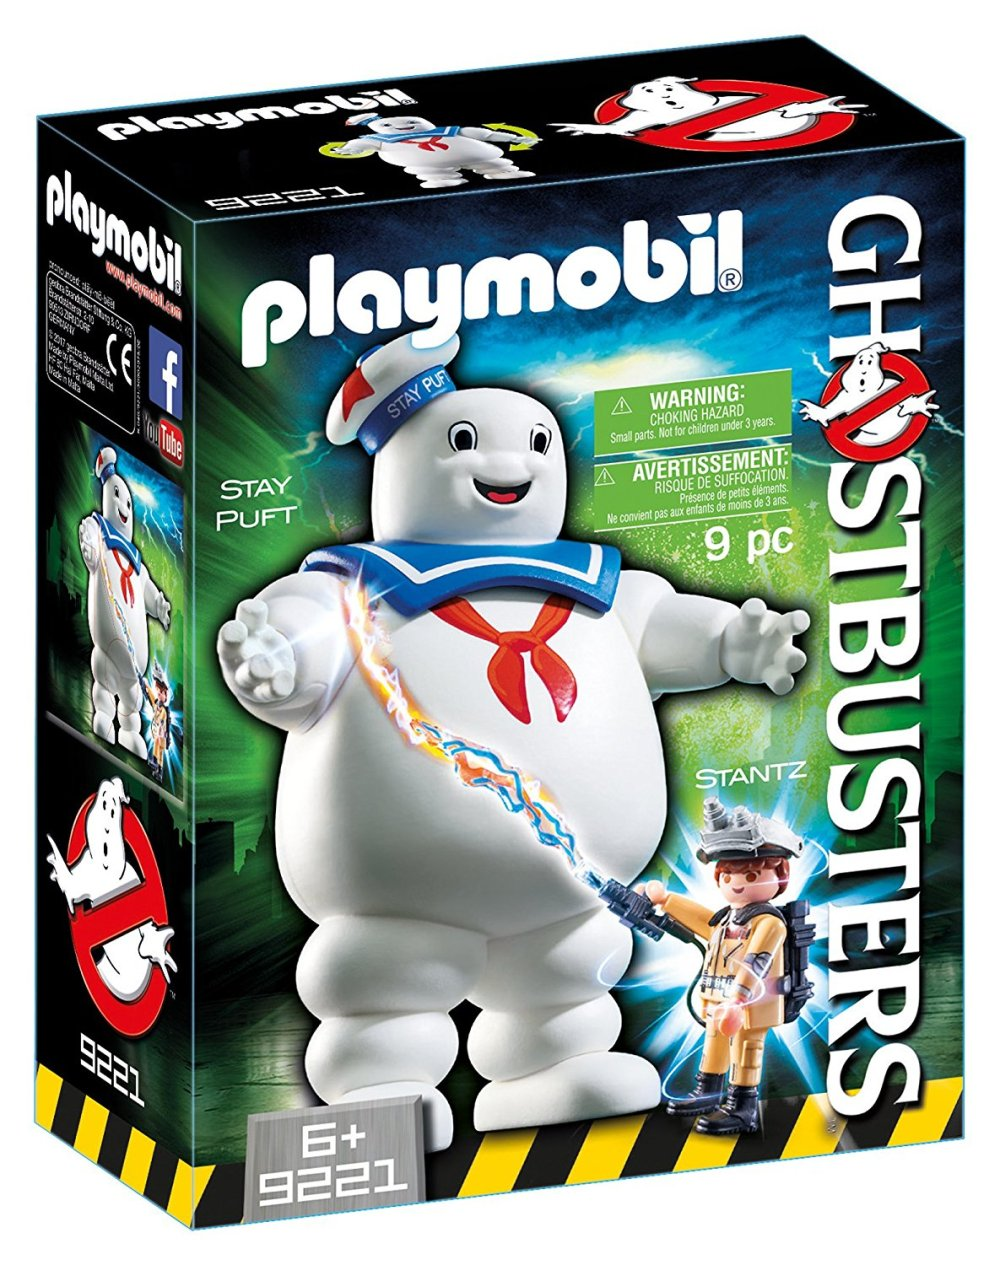 omino mashmellow ghostbusters toy playmobil hot amazon buy now compra_